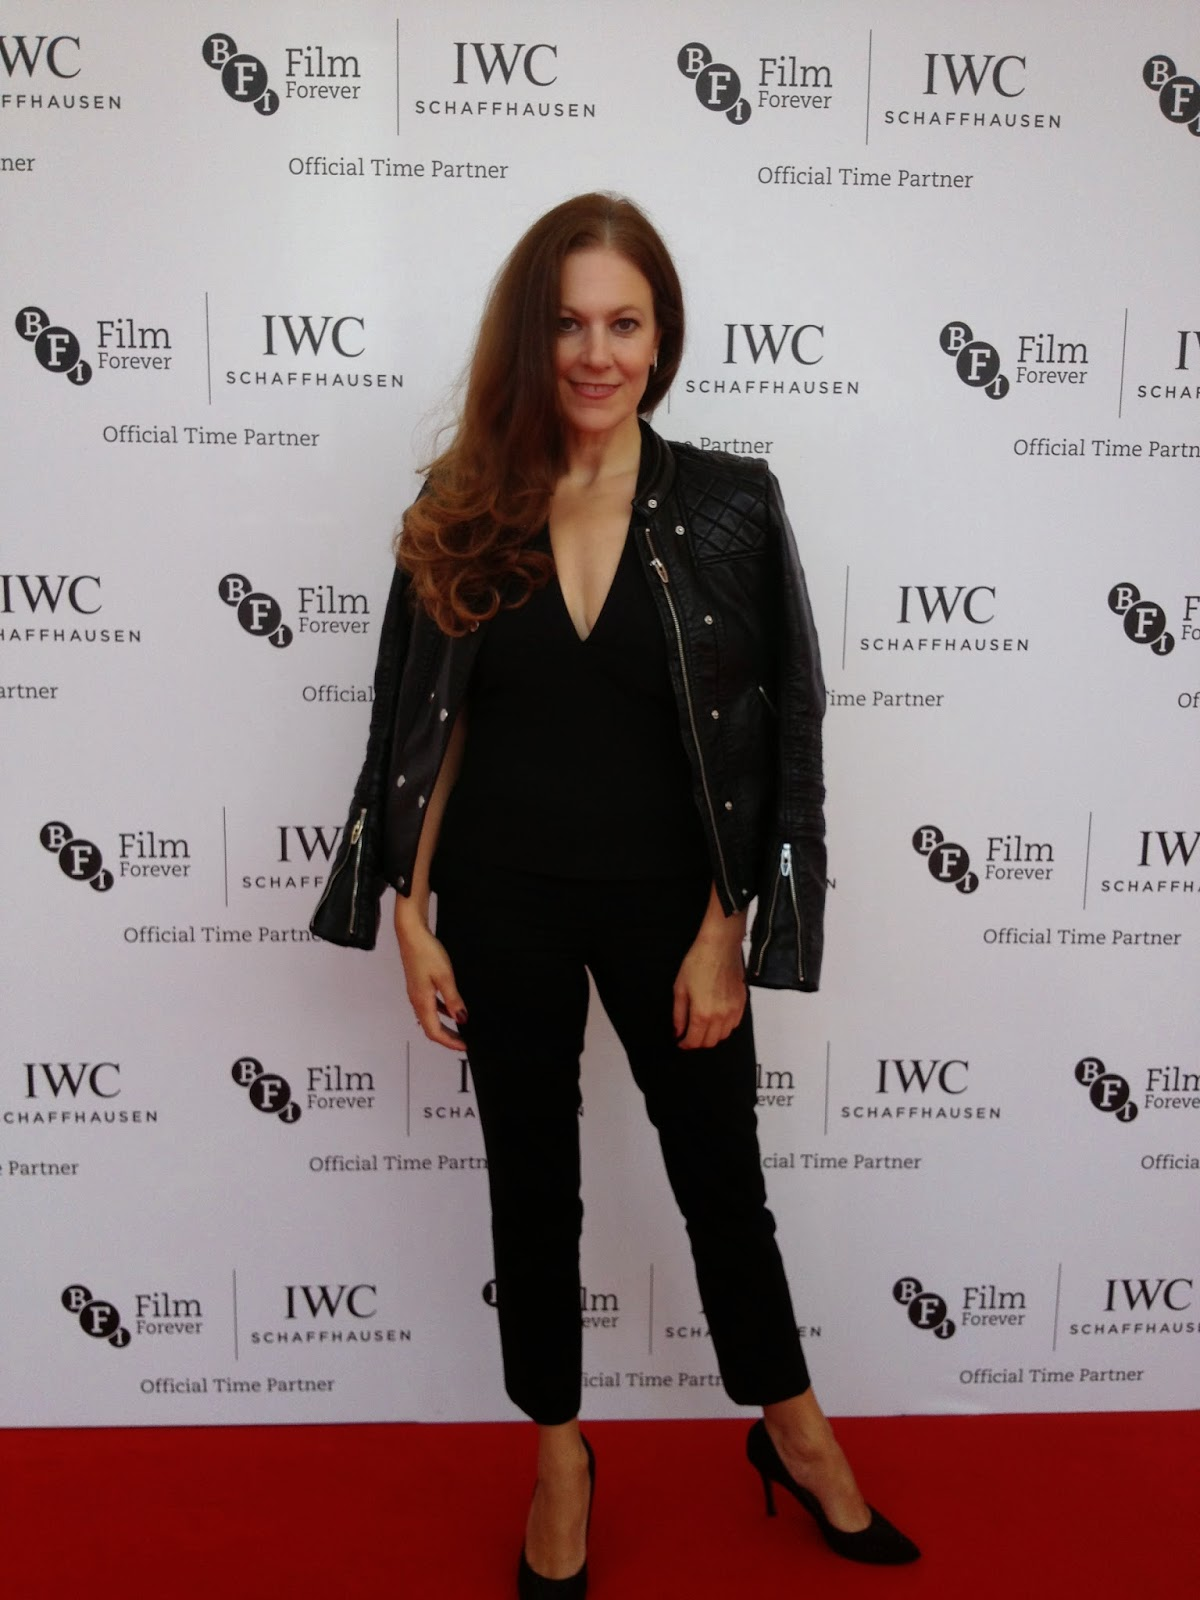 Standing out: The chic trouser suit showed off the bloggers enviable slim figure